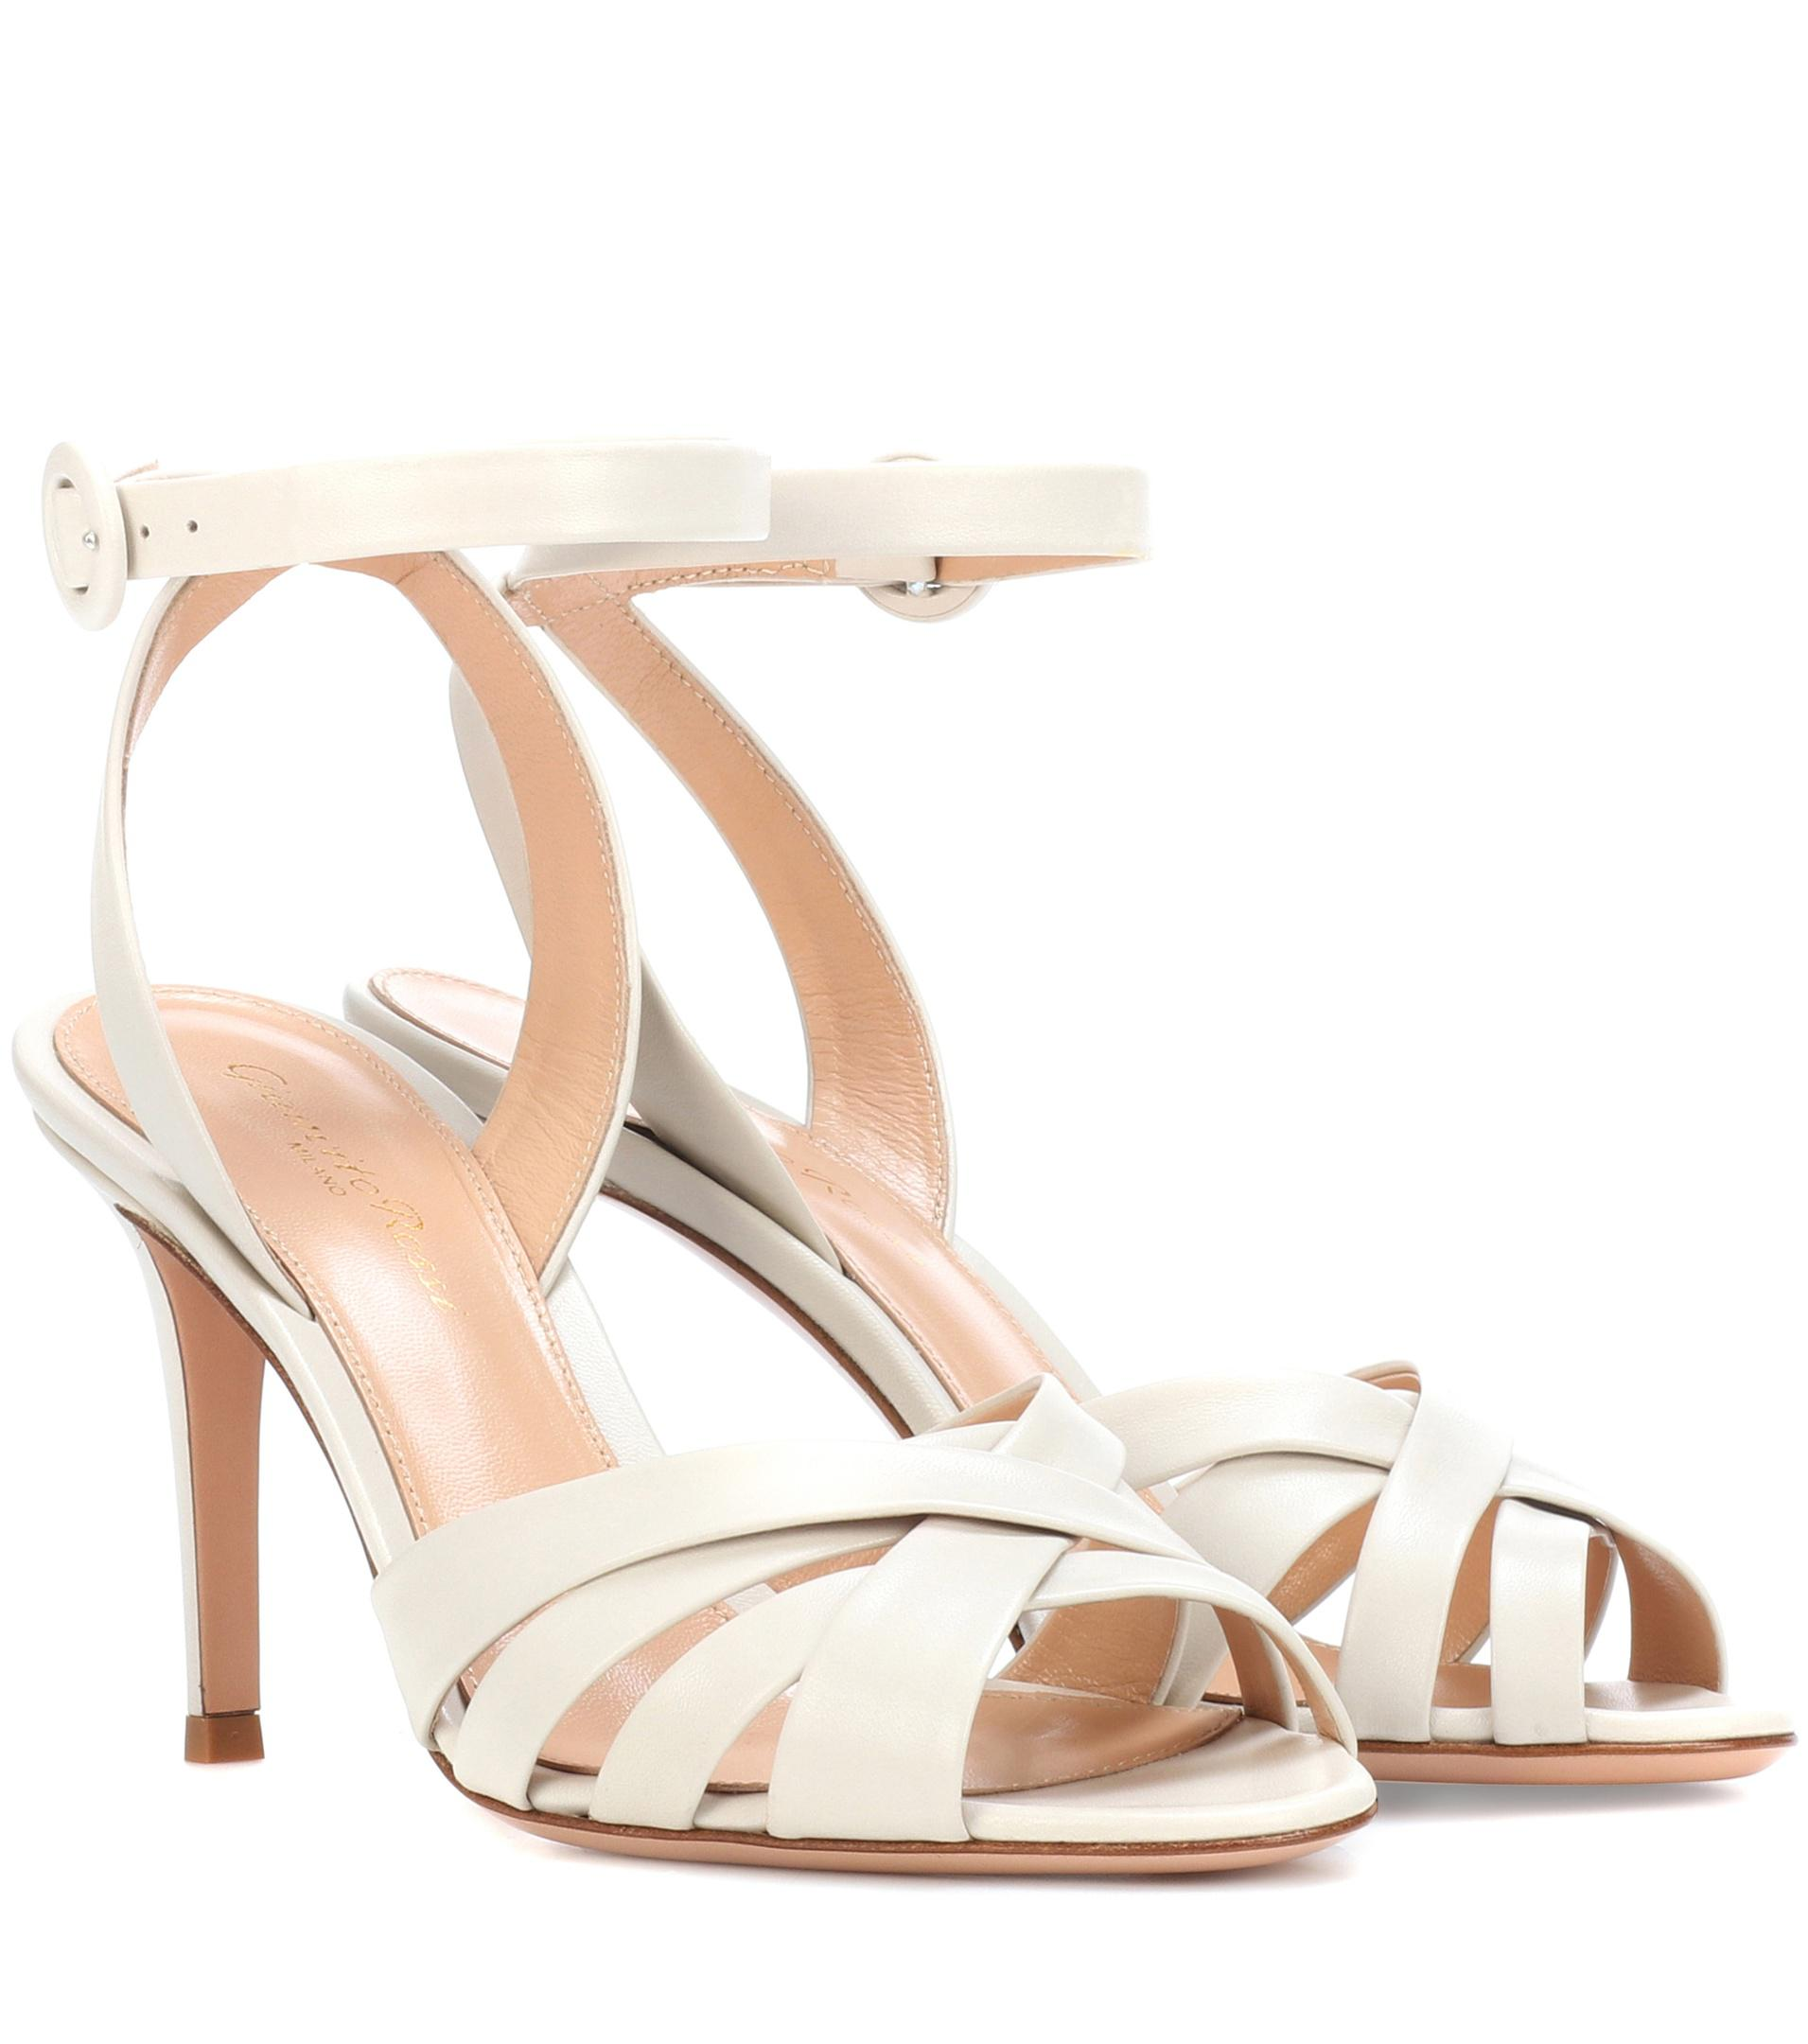 Gianvito Rossi Exclusive to mytheresa.com FklqwV9Axe